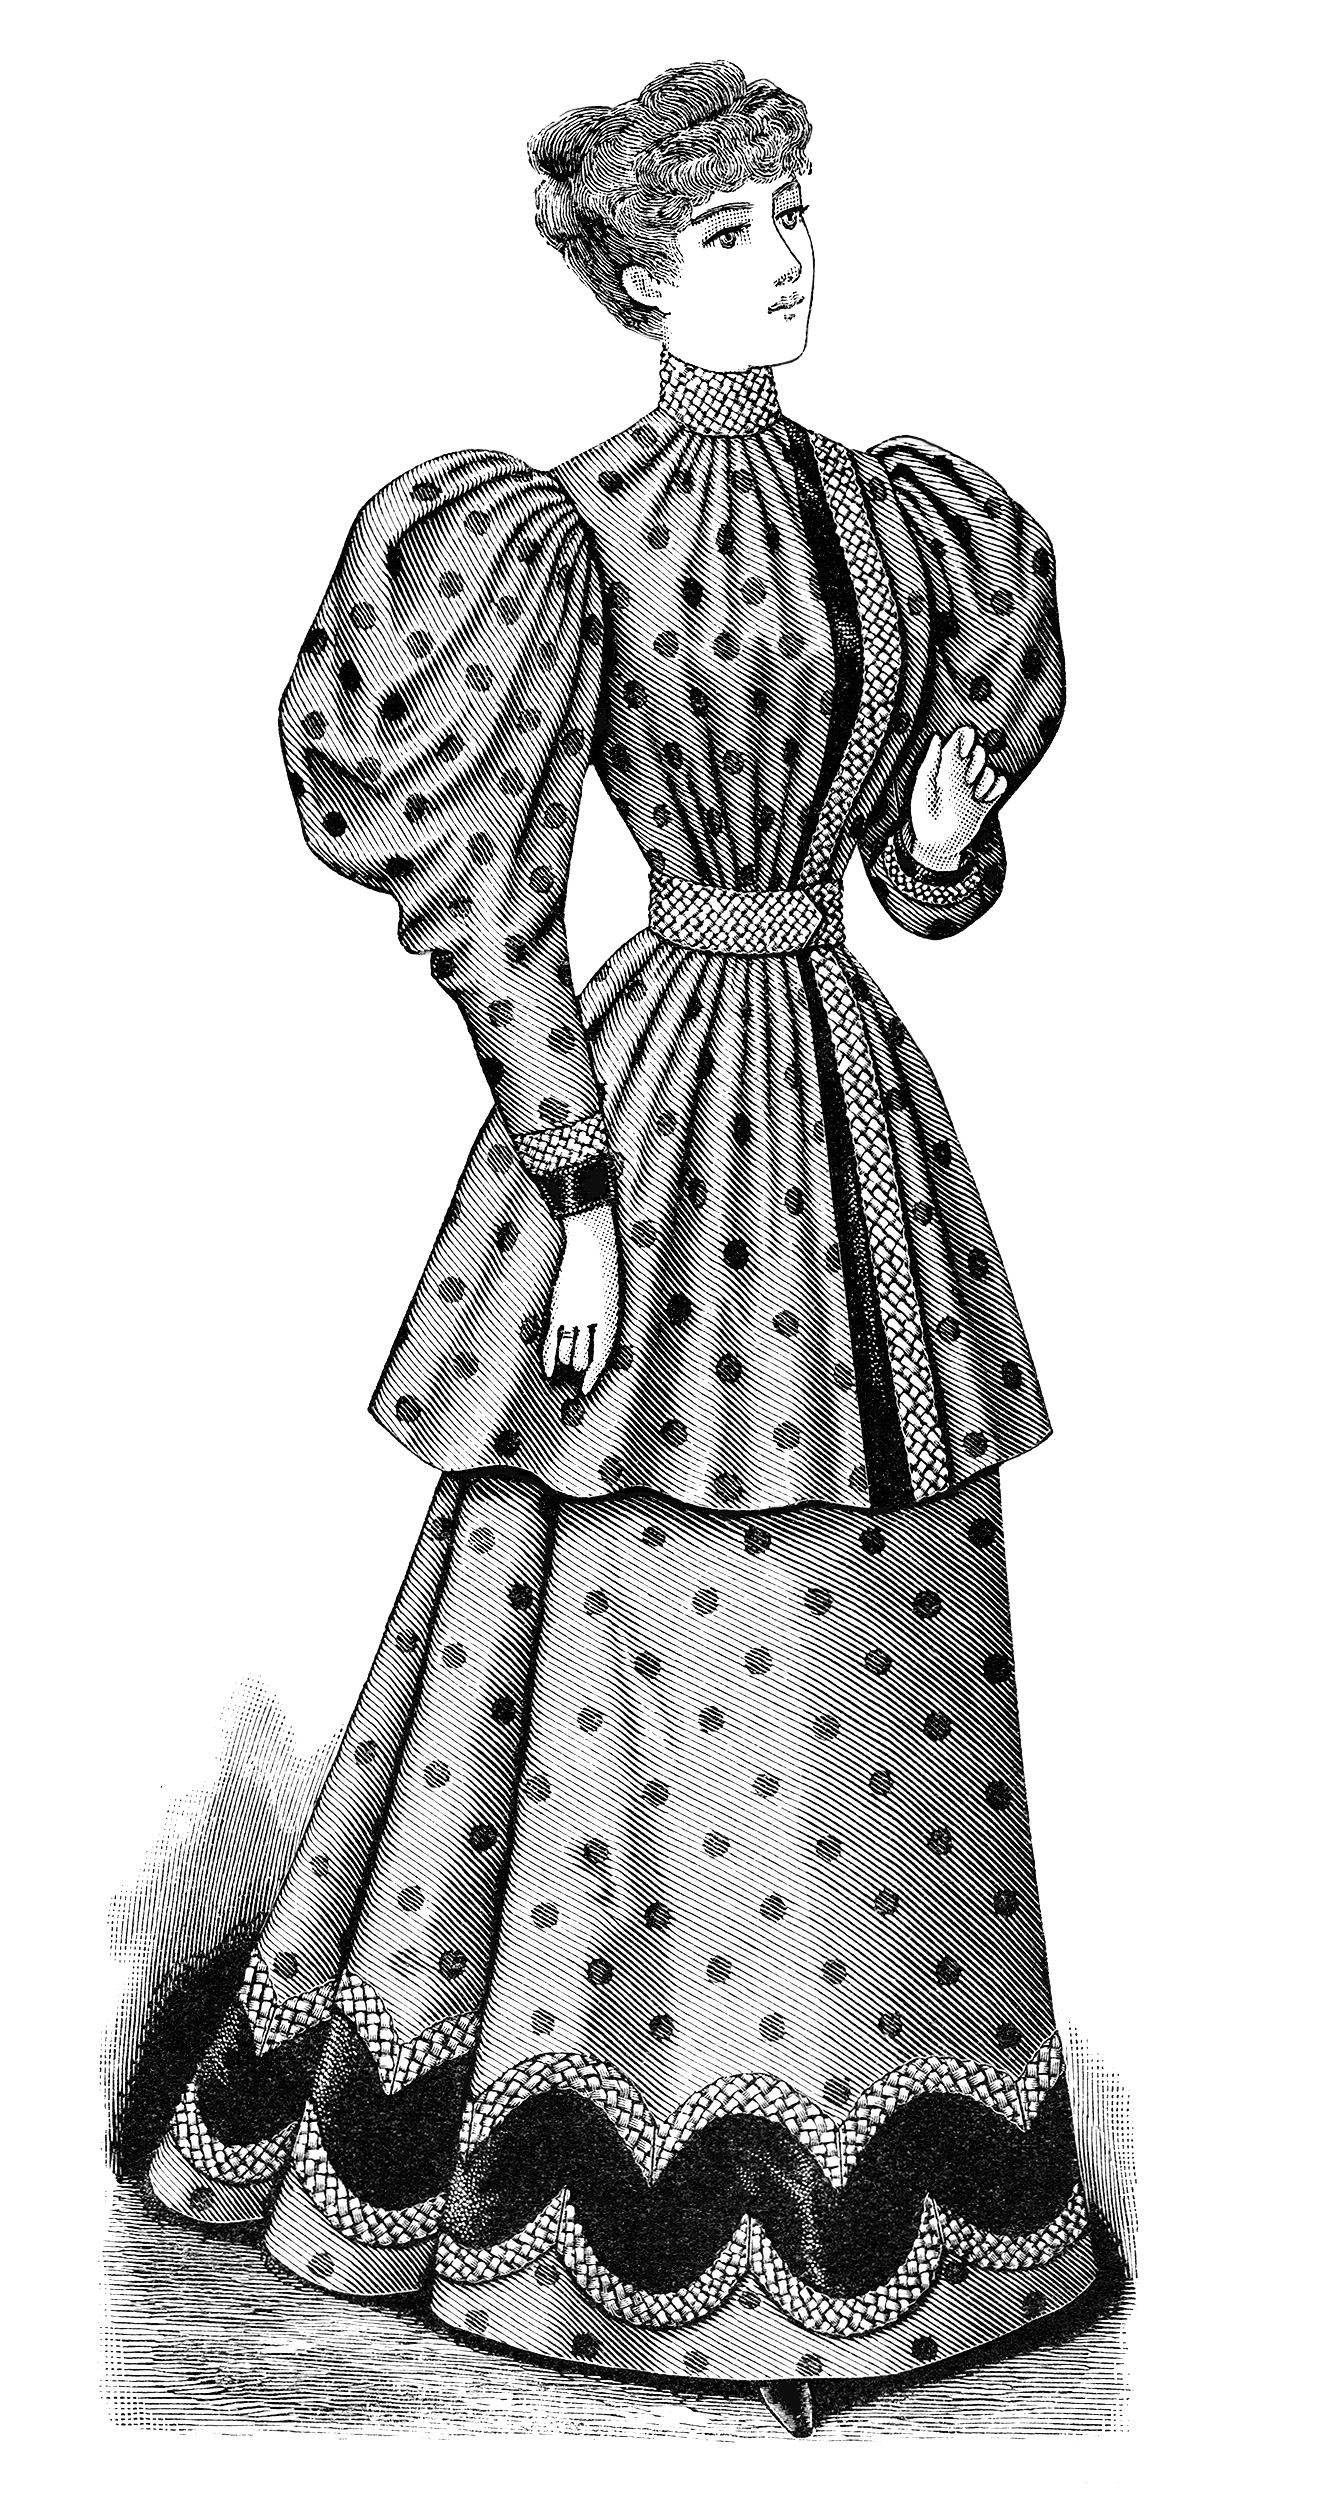 Clip Art Old Fashioned Polka Dot Dress Illustration Black And White